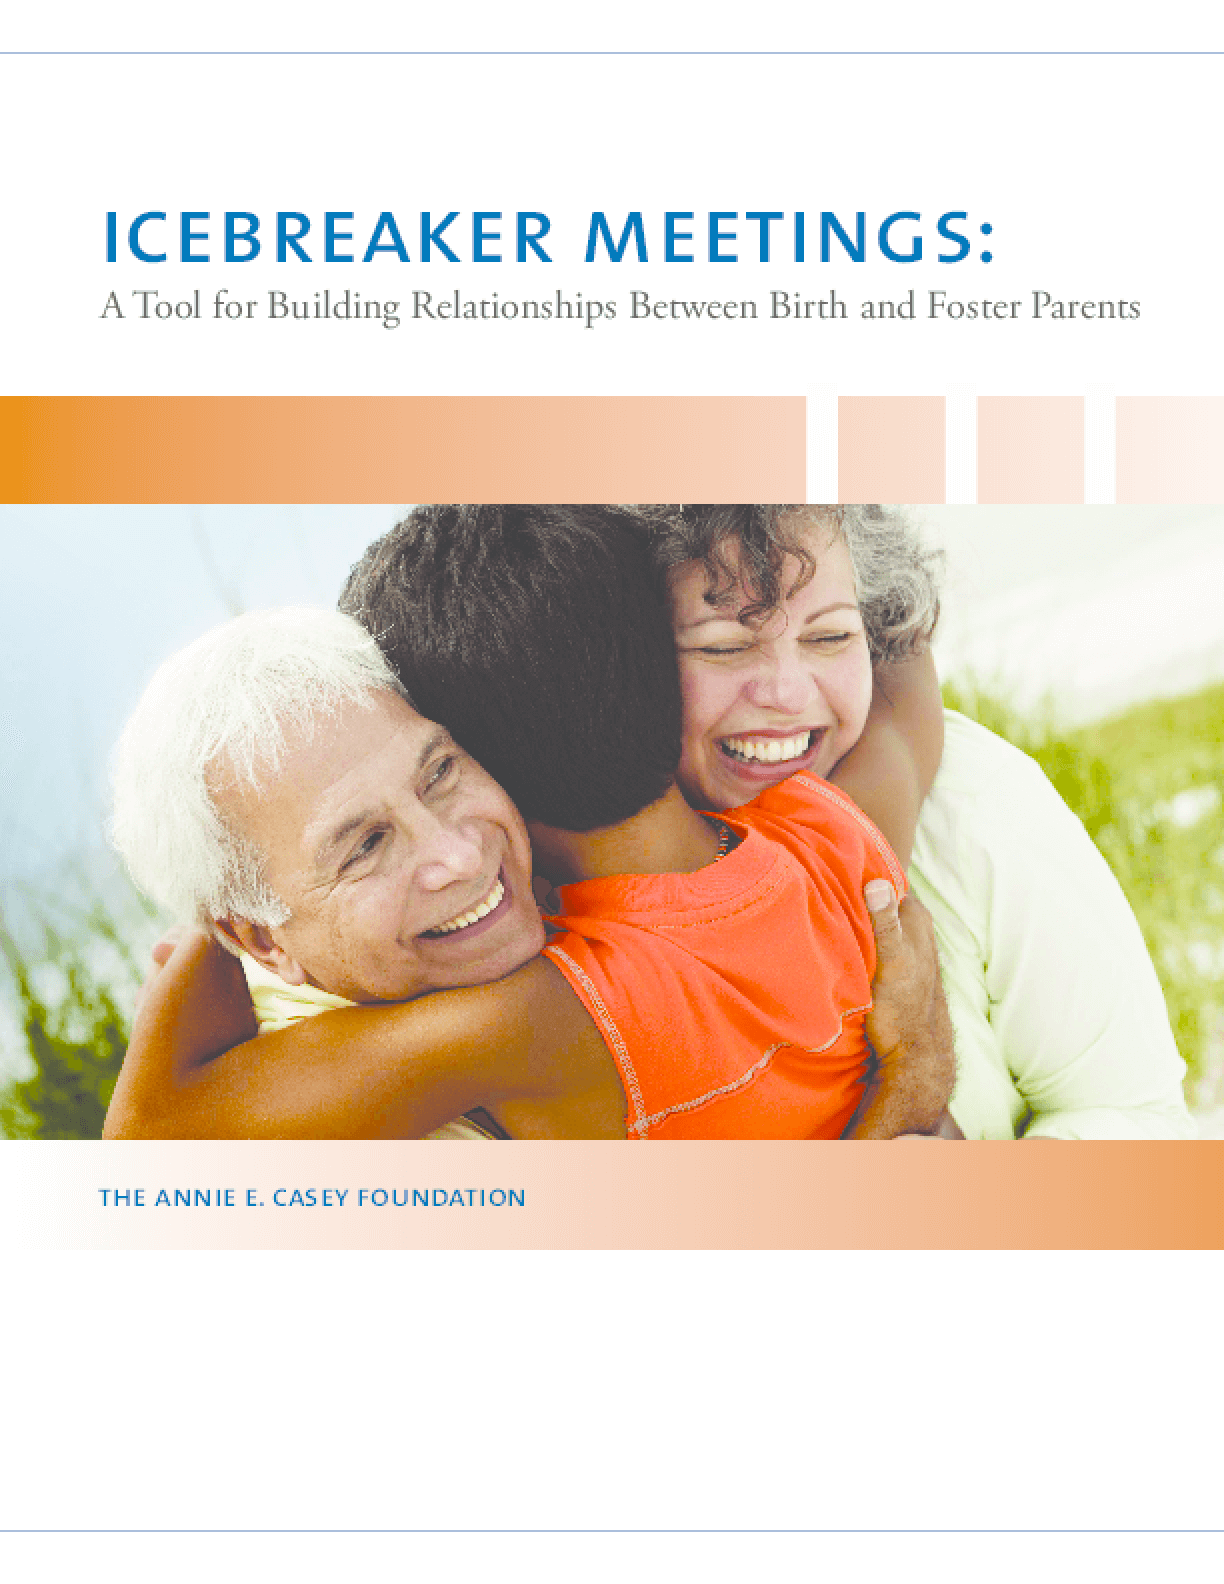 Icebreaker Meetings Toolkit: A Tool for Building Relationships Between Birth and Foster Parents